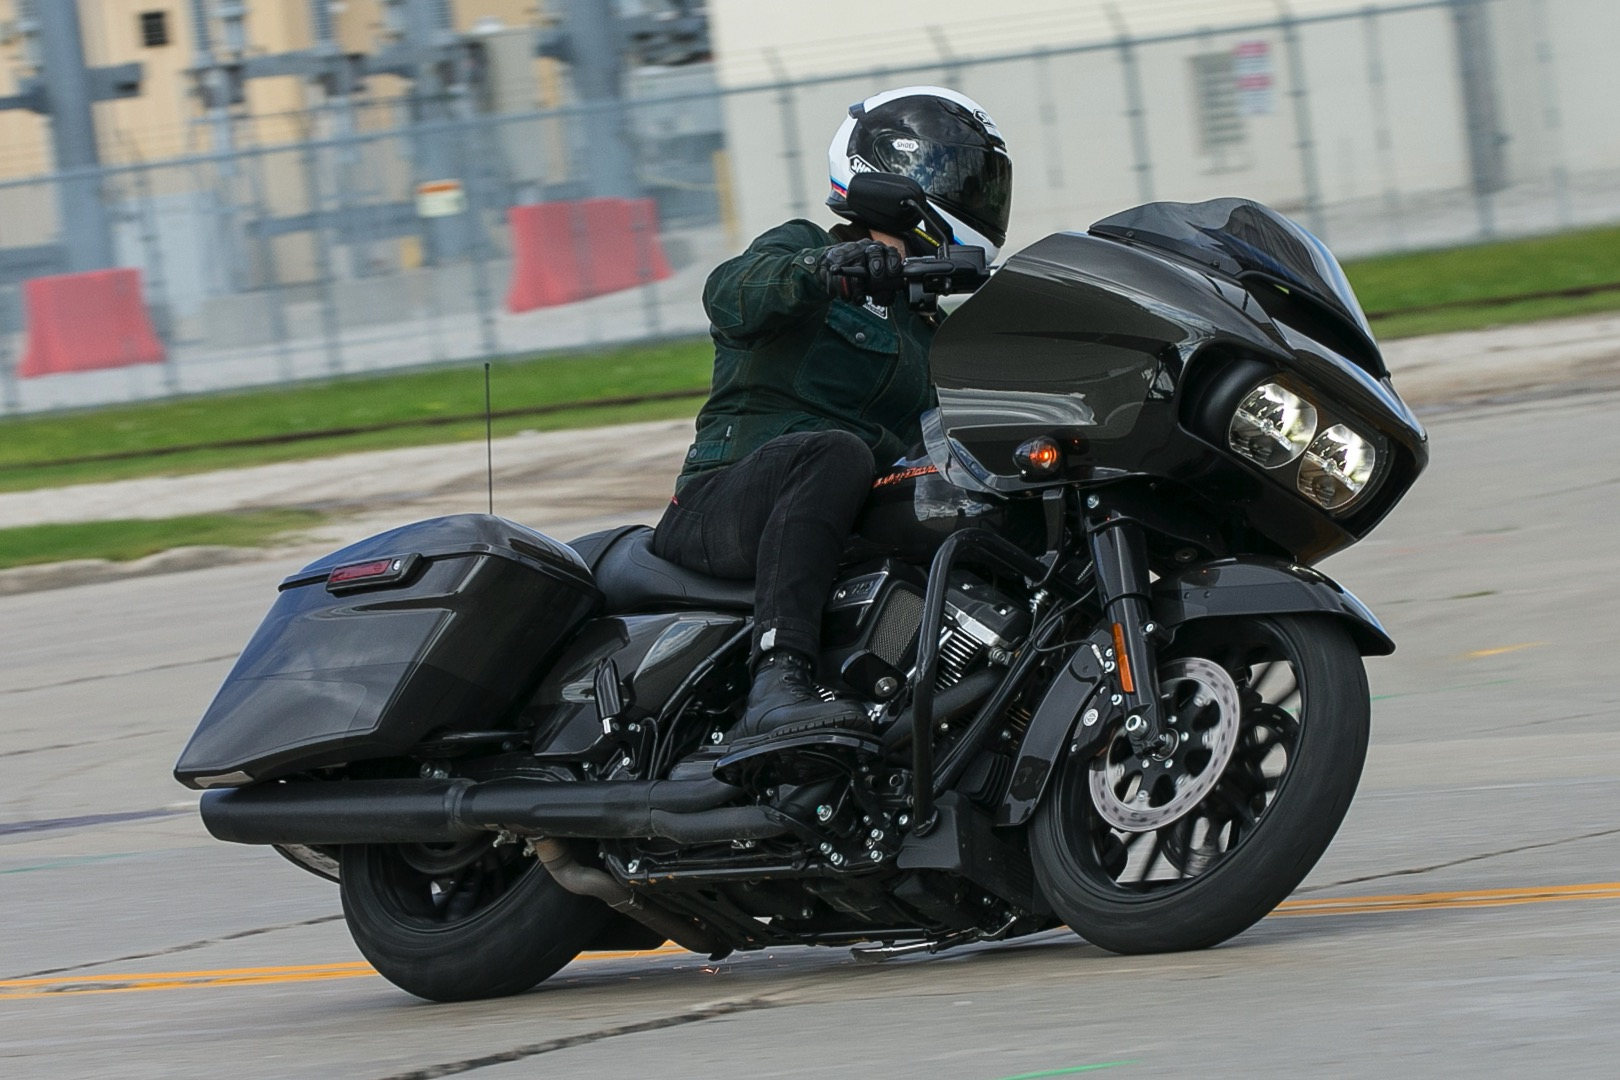 2019 harley davidson road glide special review 15 fast facts. Black Bedroom Furniture Sets. Home Design Ideas